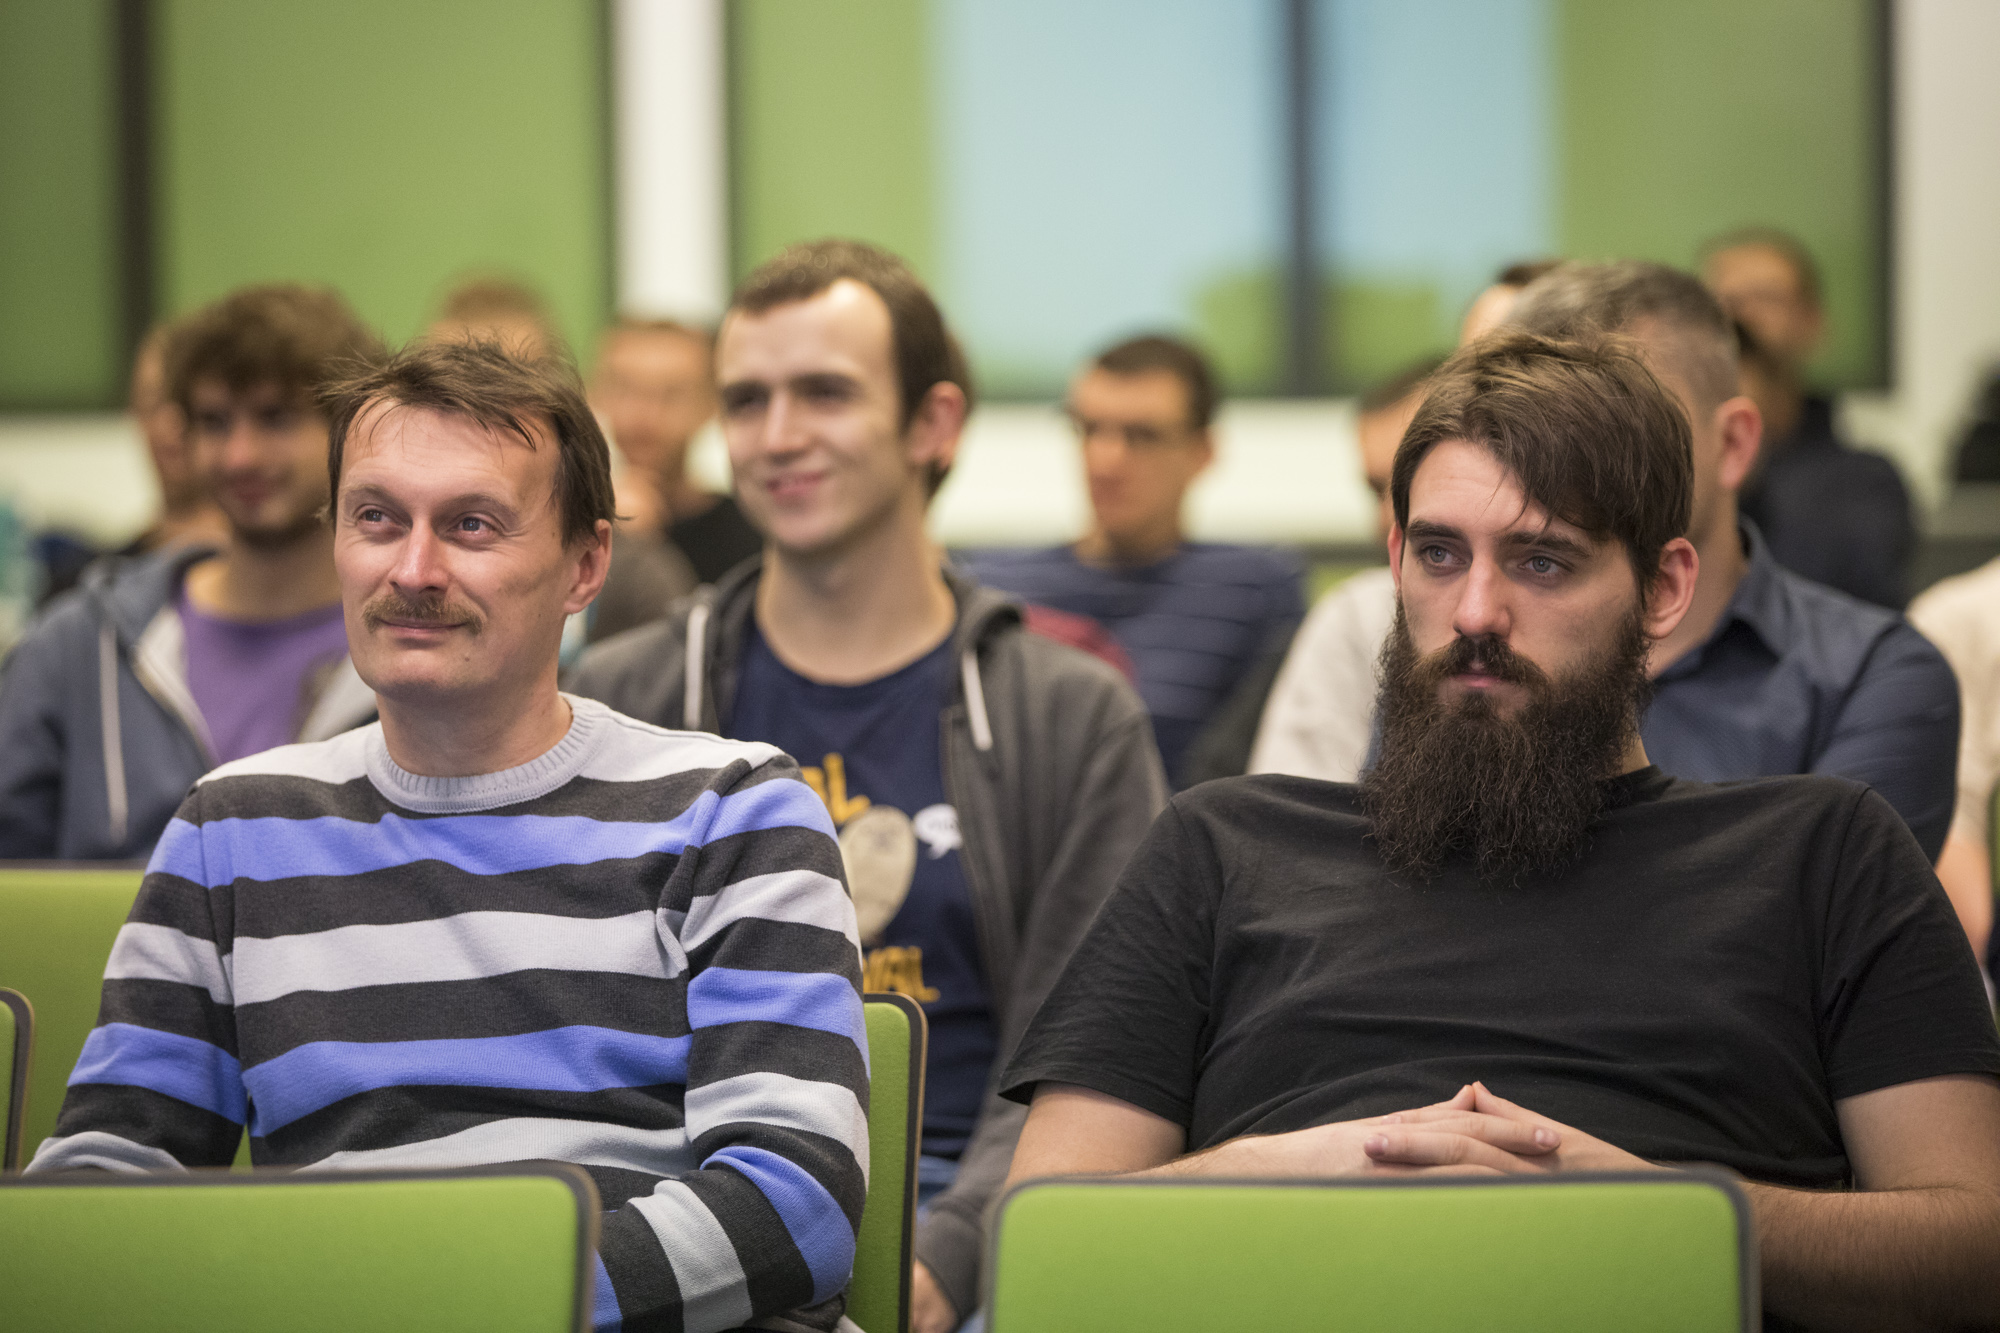 Android-meetup-gdansk-011216-2